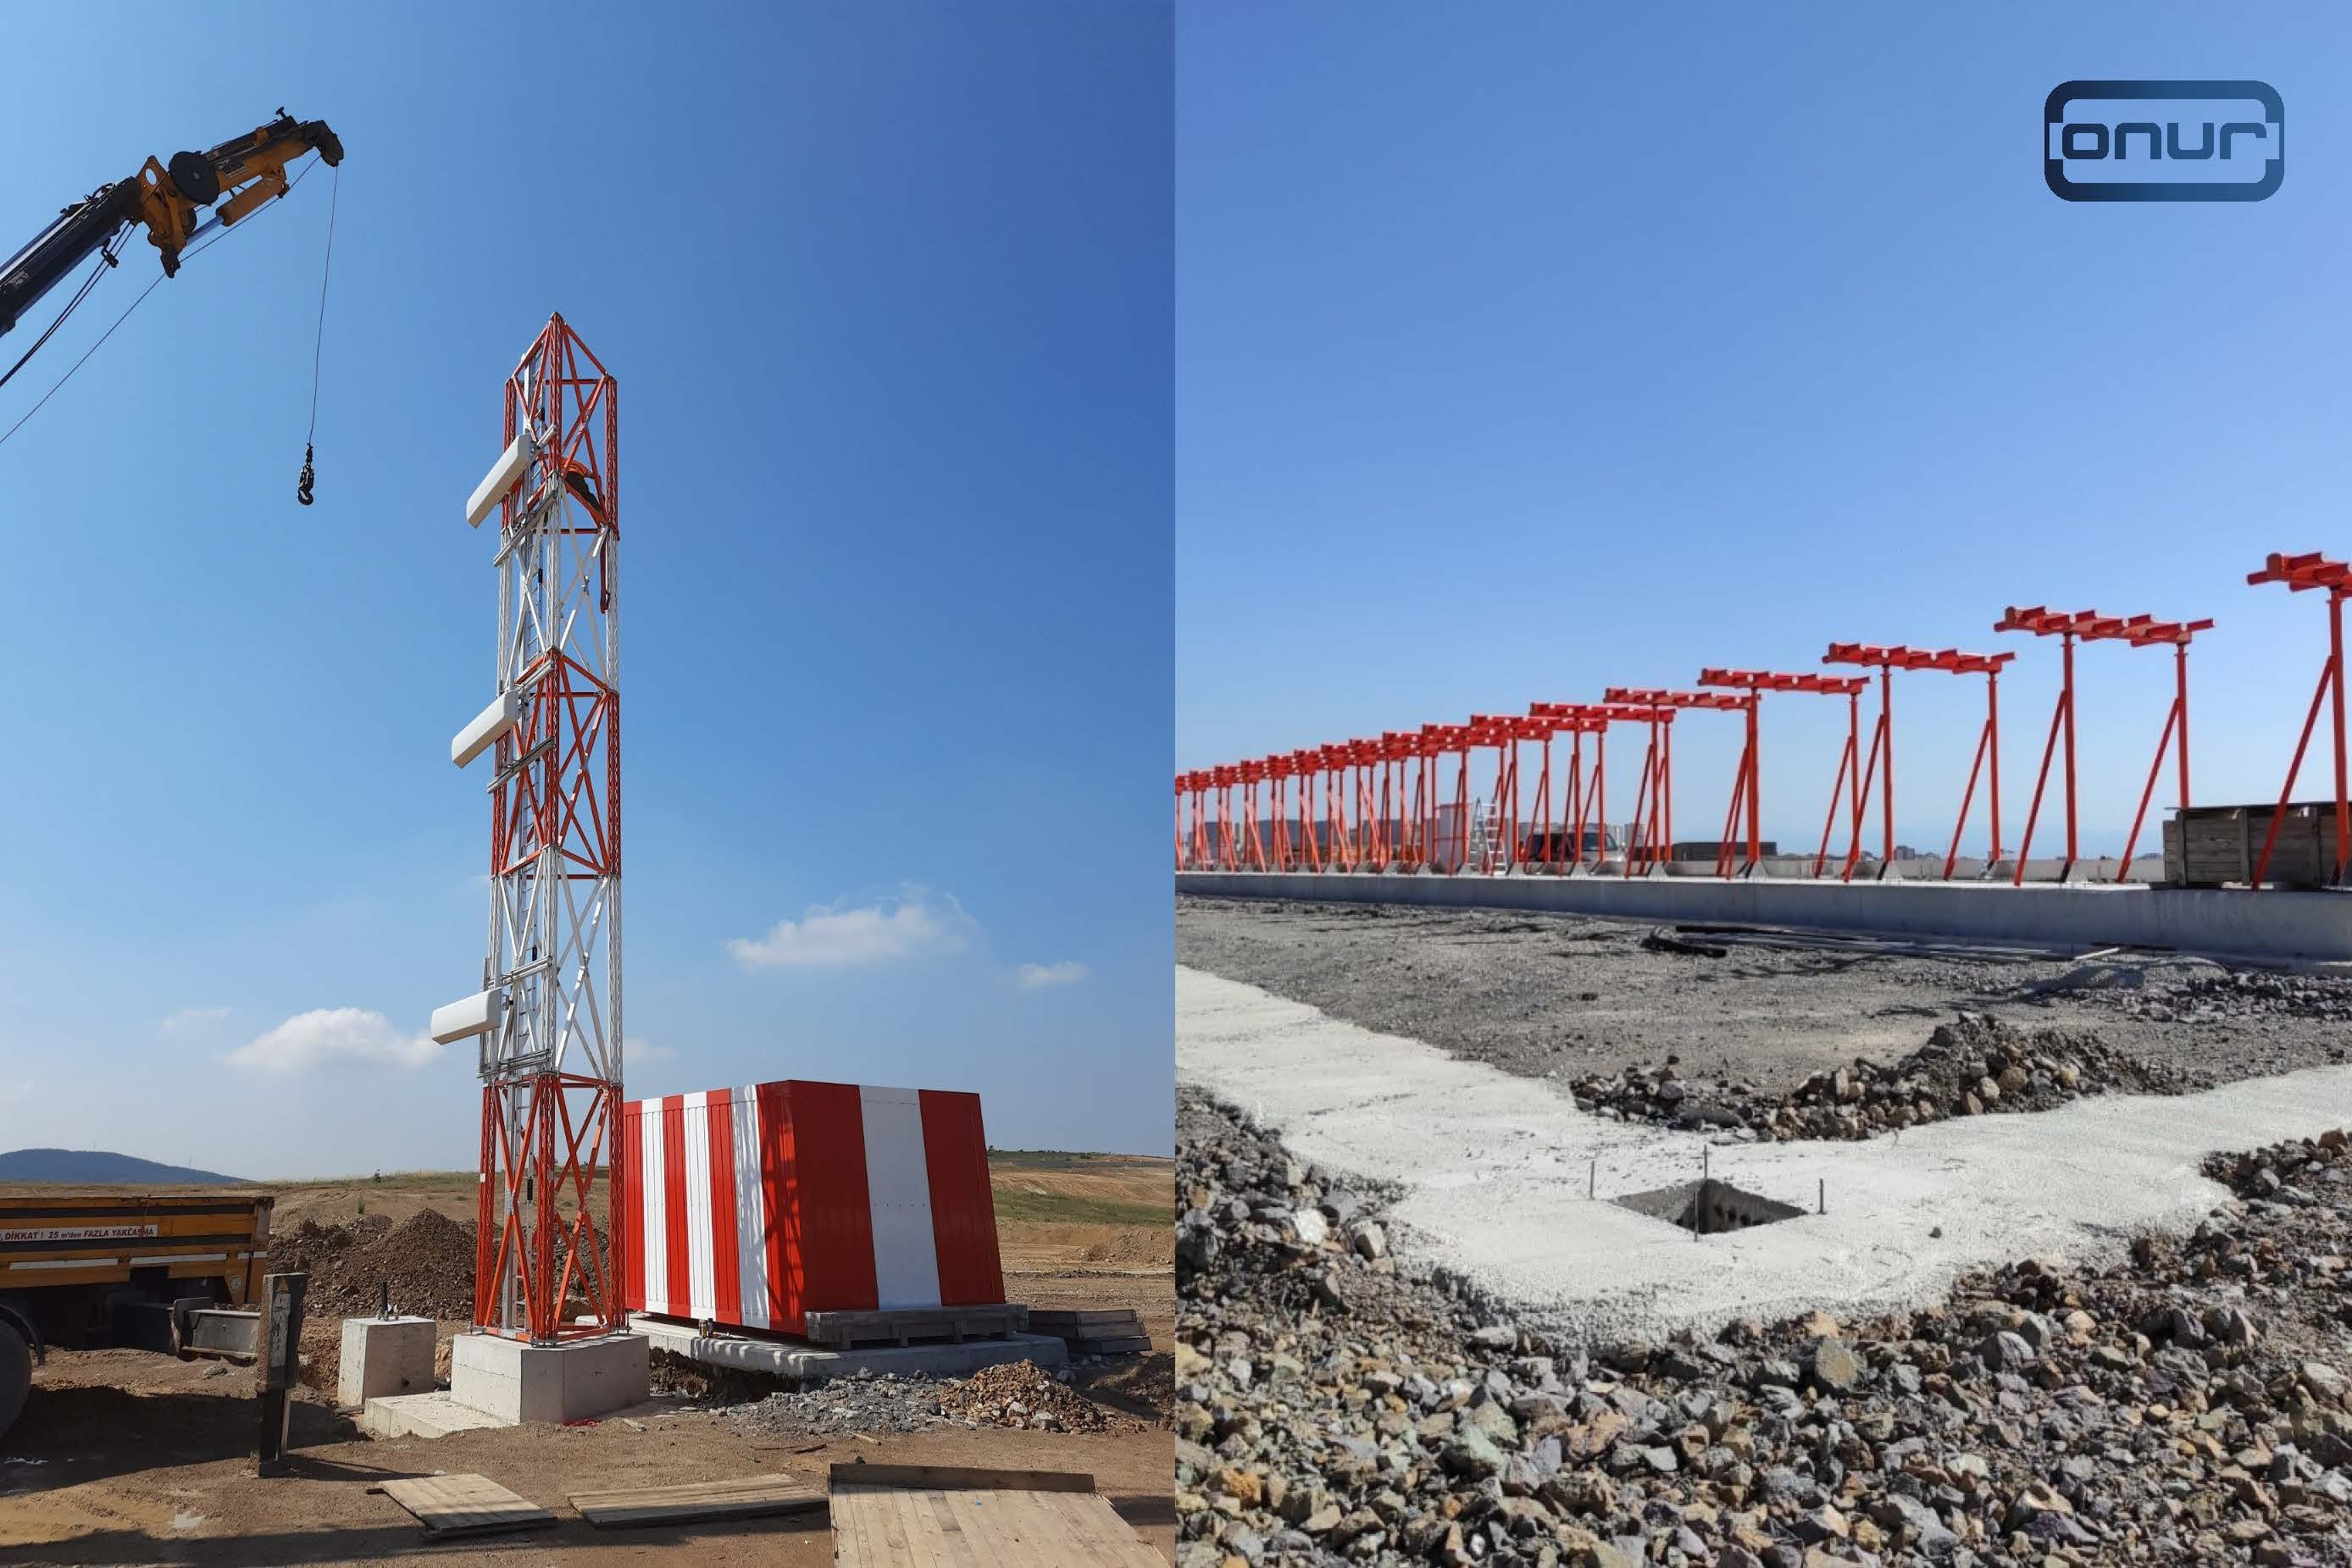 ONUR continues to run on-site integration work of ILS/DME systems at İstanbul Sabiha Gökçen International Airport.